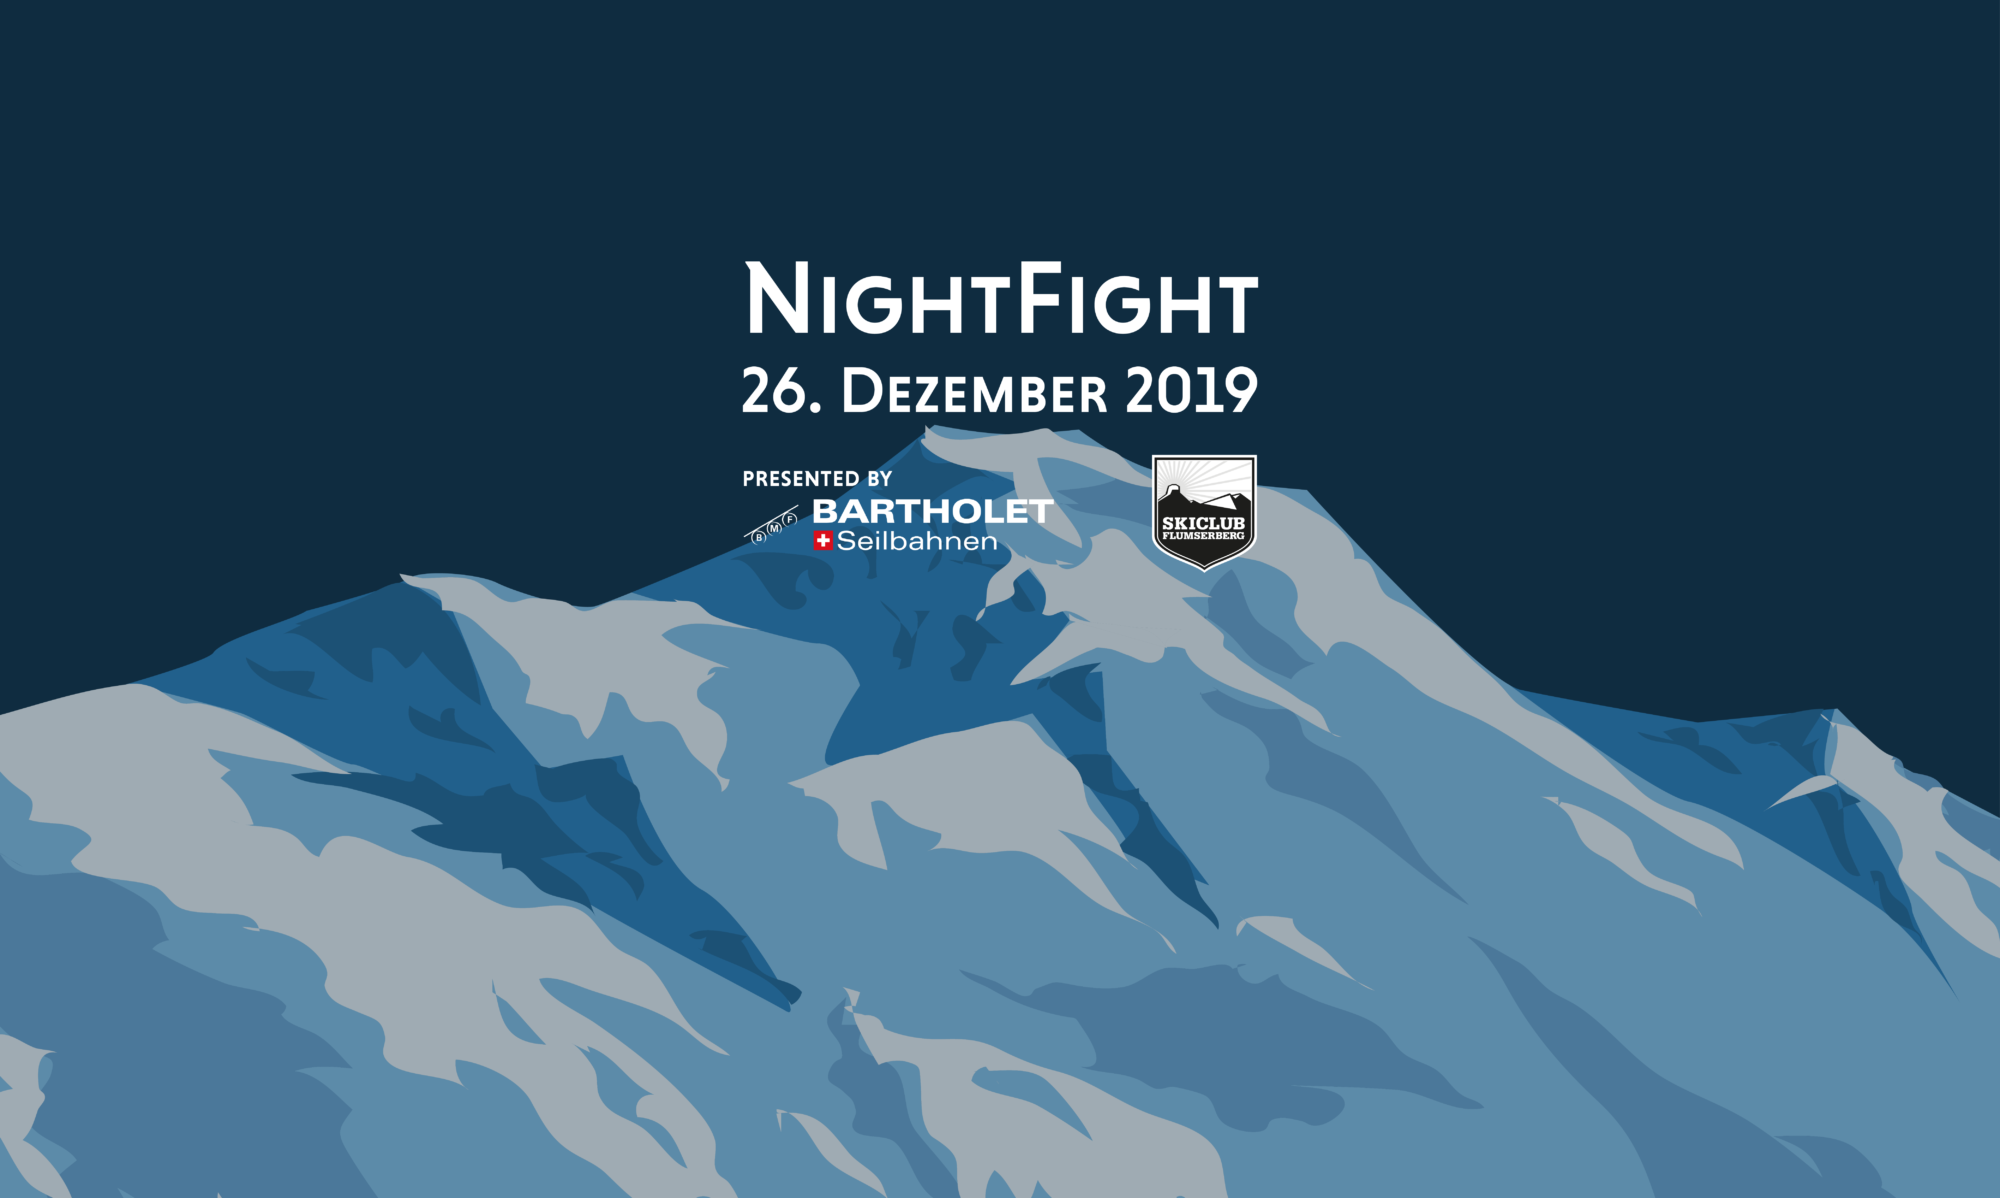 NightFight